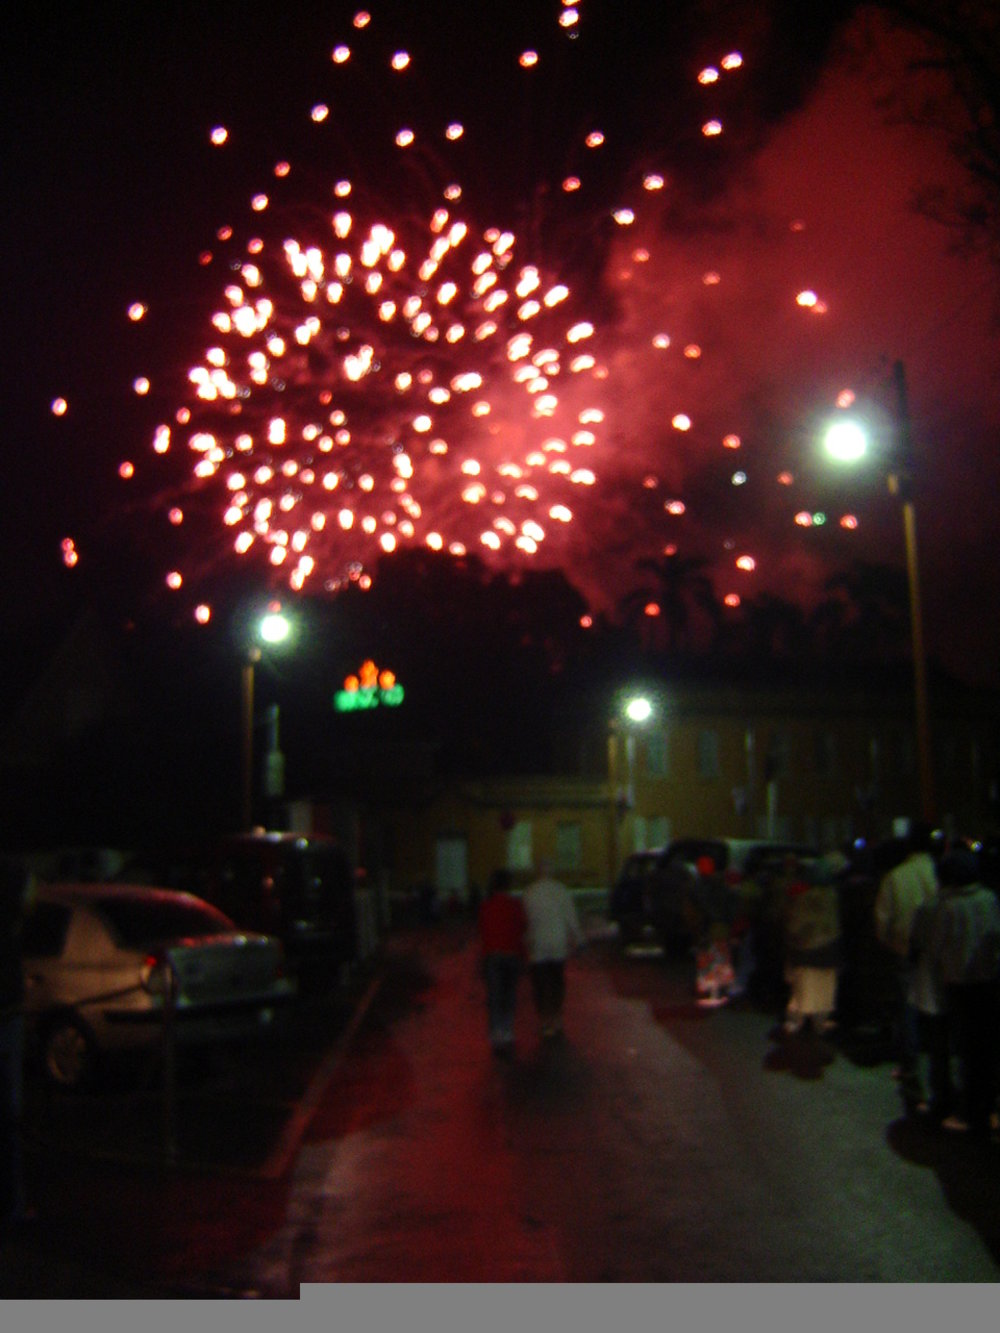 Fireworks display in Mantasua